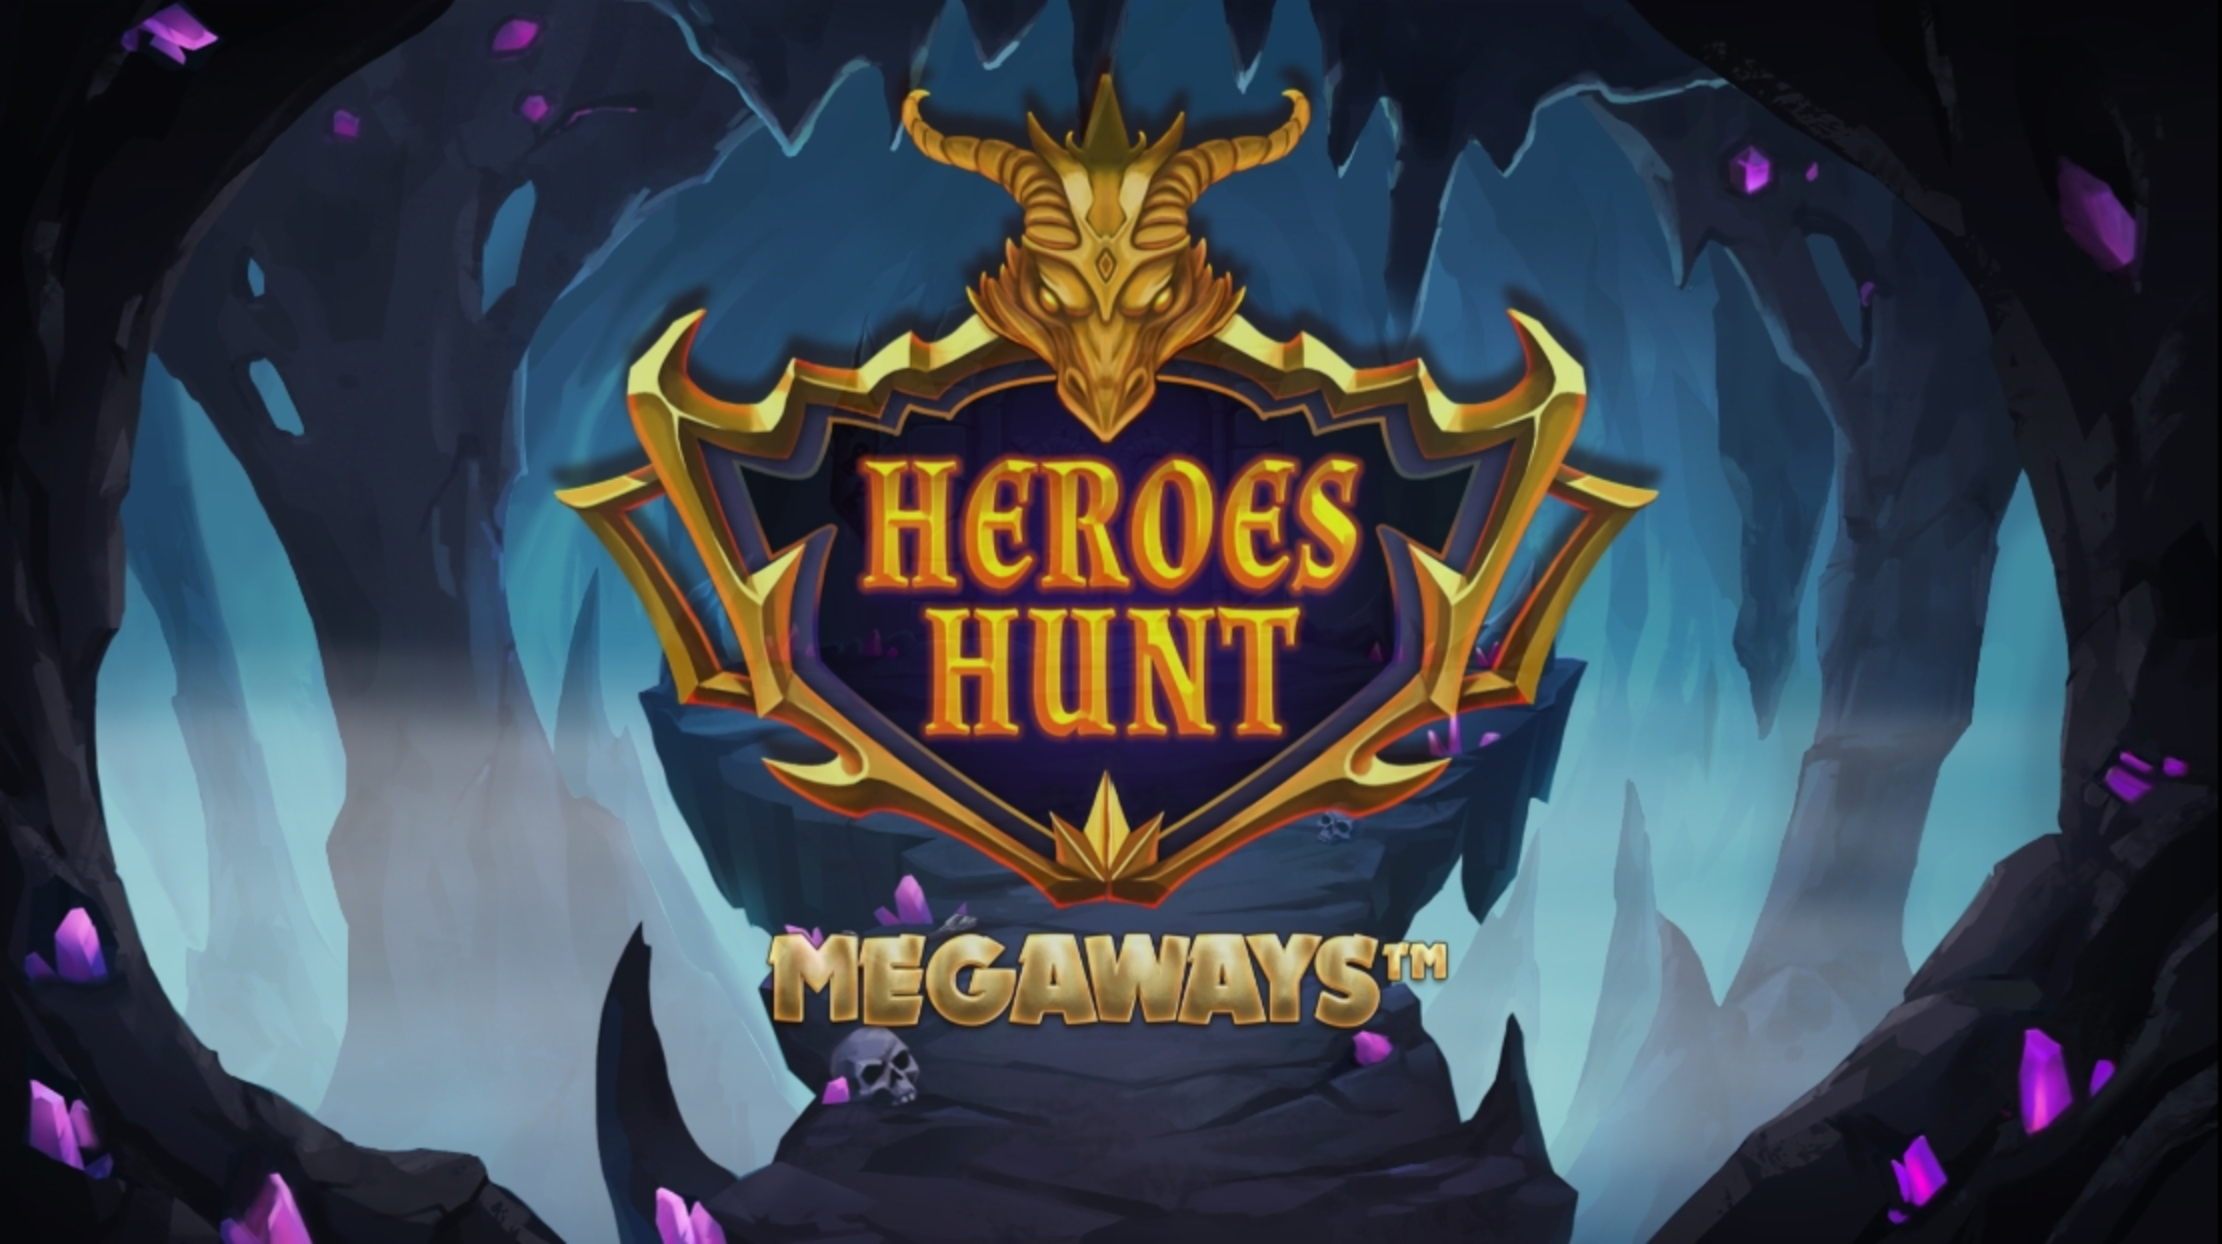 Play Heroes Hunt Megaways Free Casino Slot Game by Fantasma Games